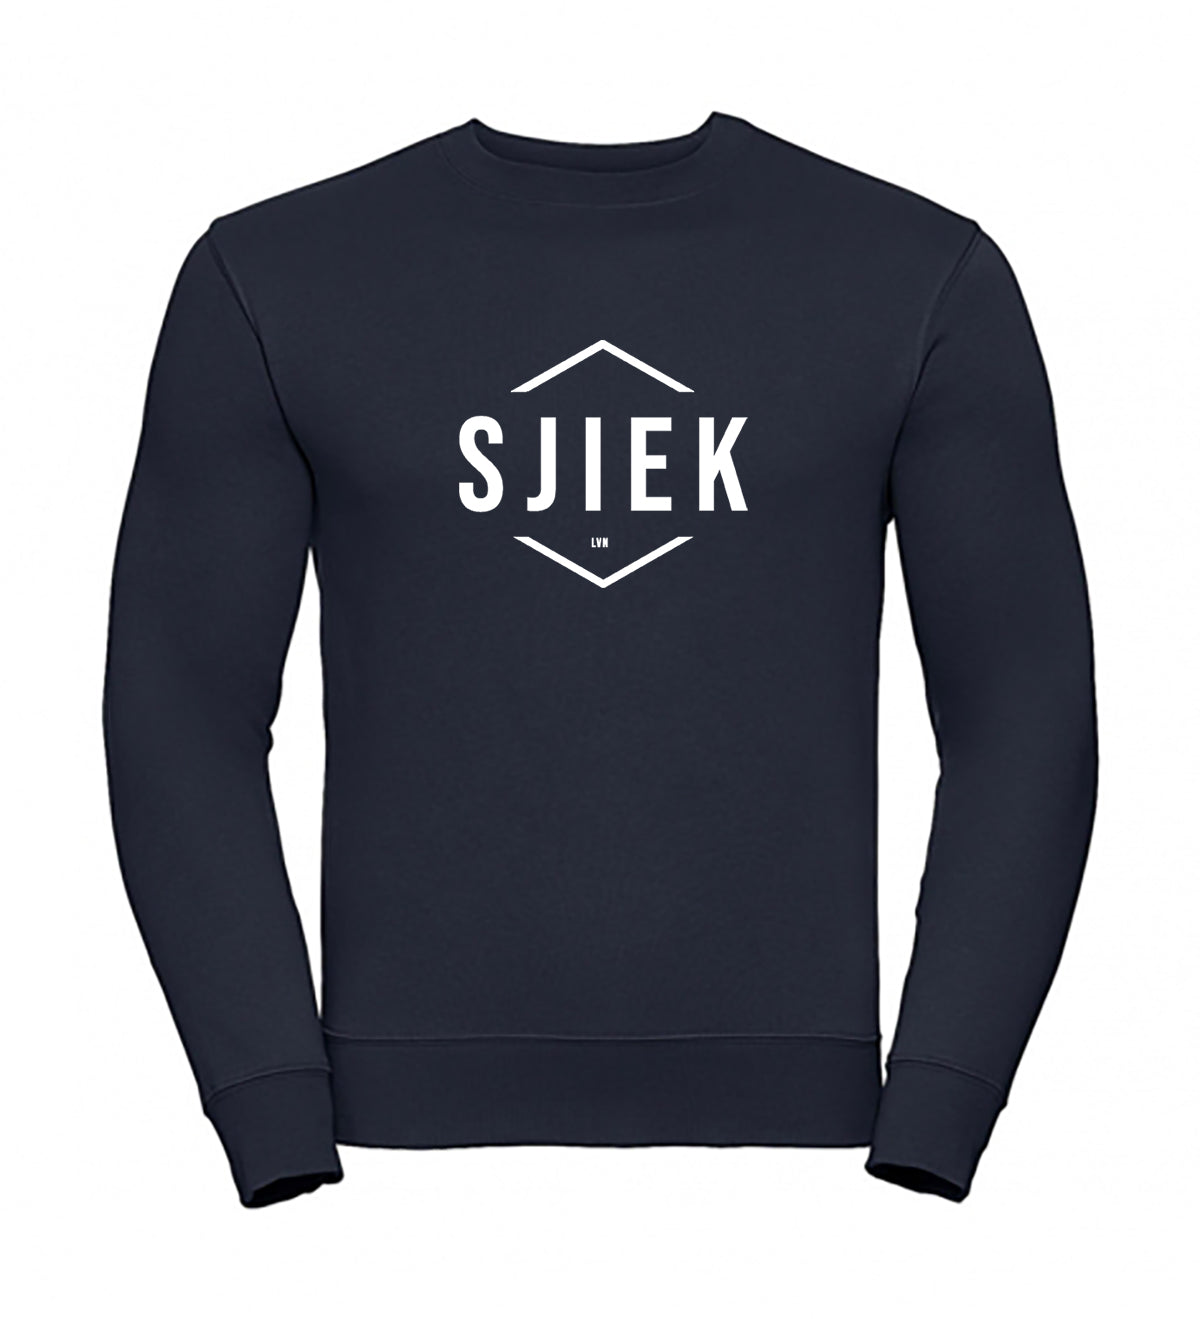 SJIEK trui SJIEK sweater SJIEK grijs